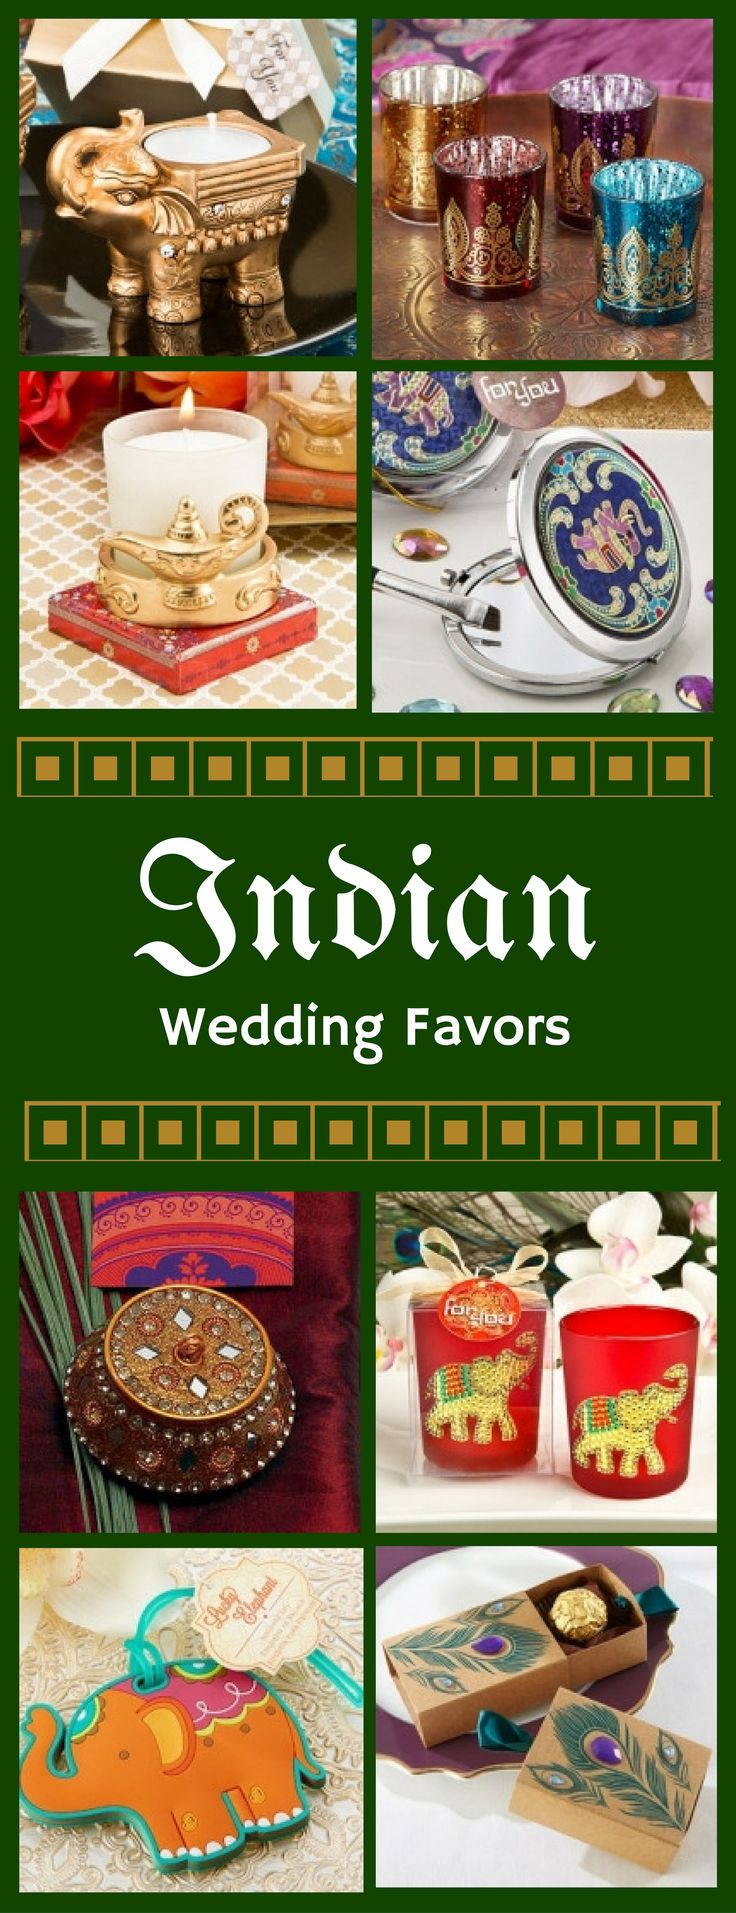 These indian wedding favors are so neat!